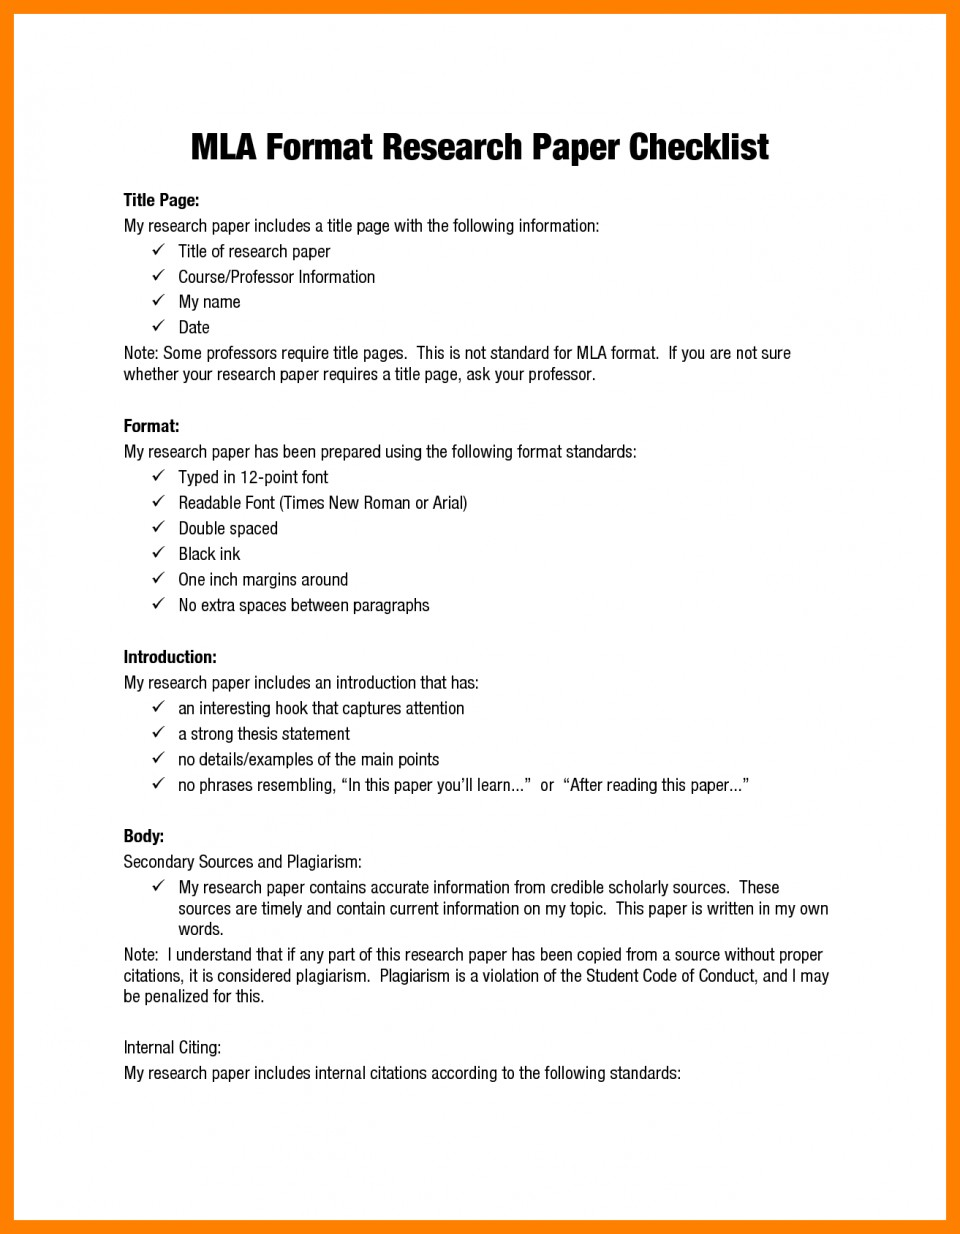 012 Research Paper Mla Format Template Essay Proposal Stupendous Sample Pdf Outline 960